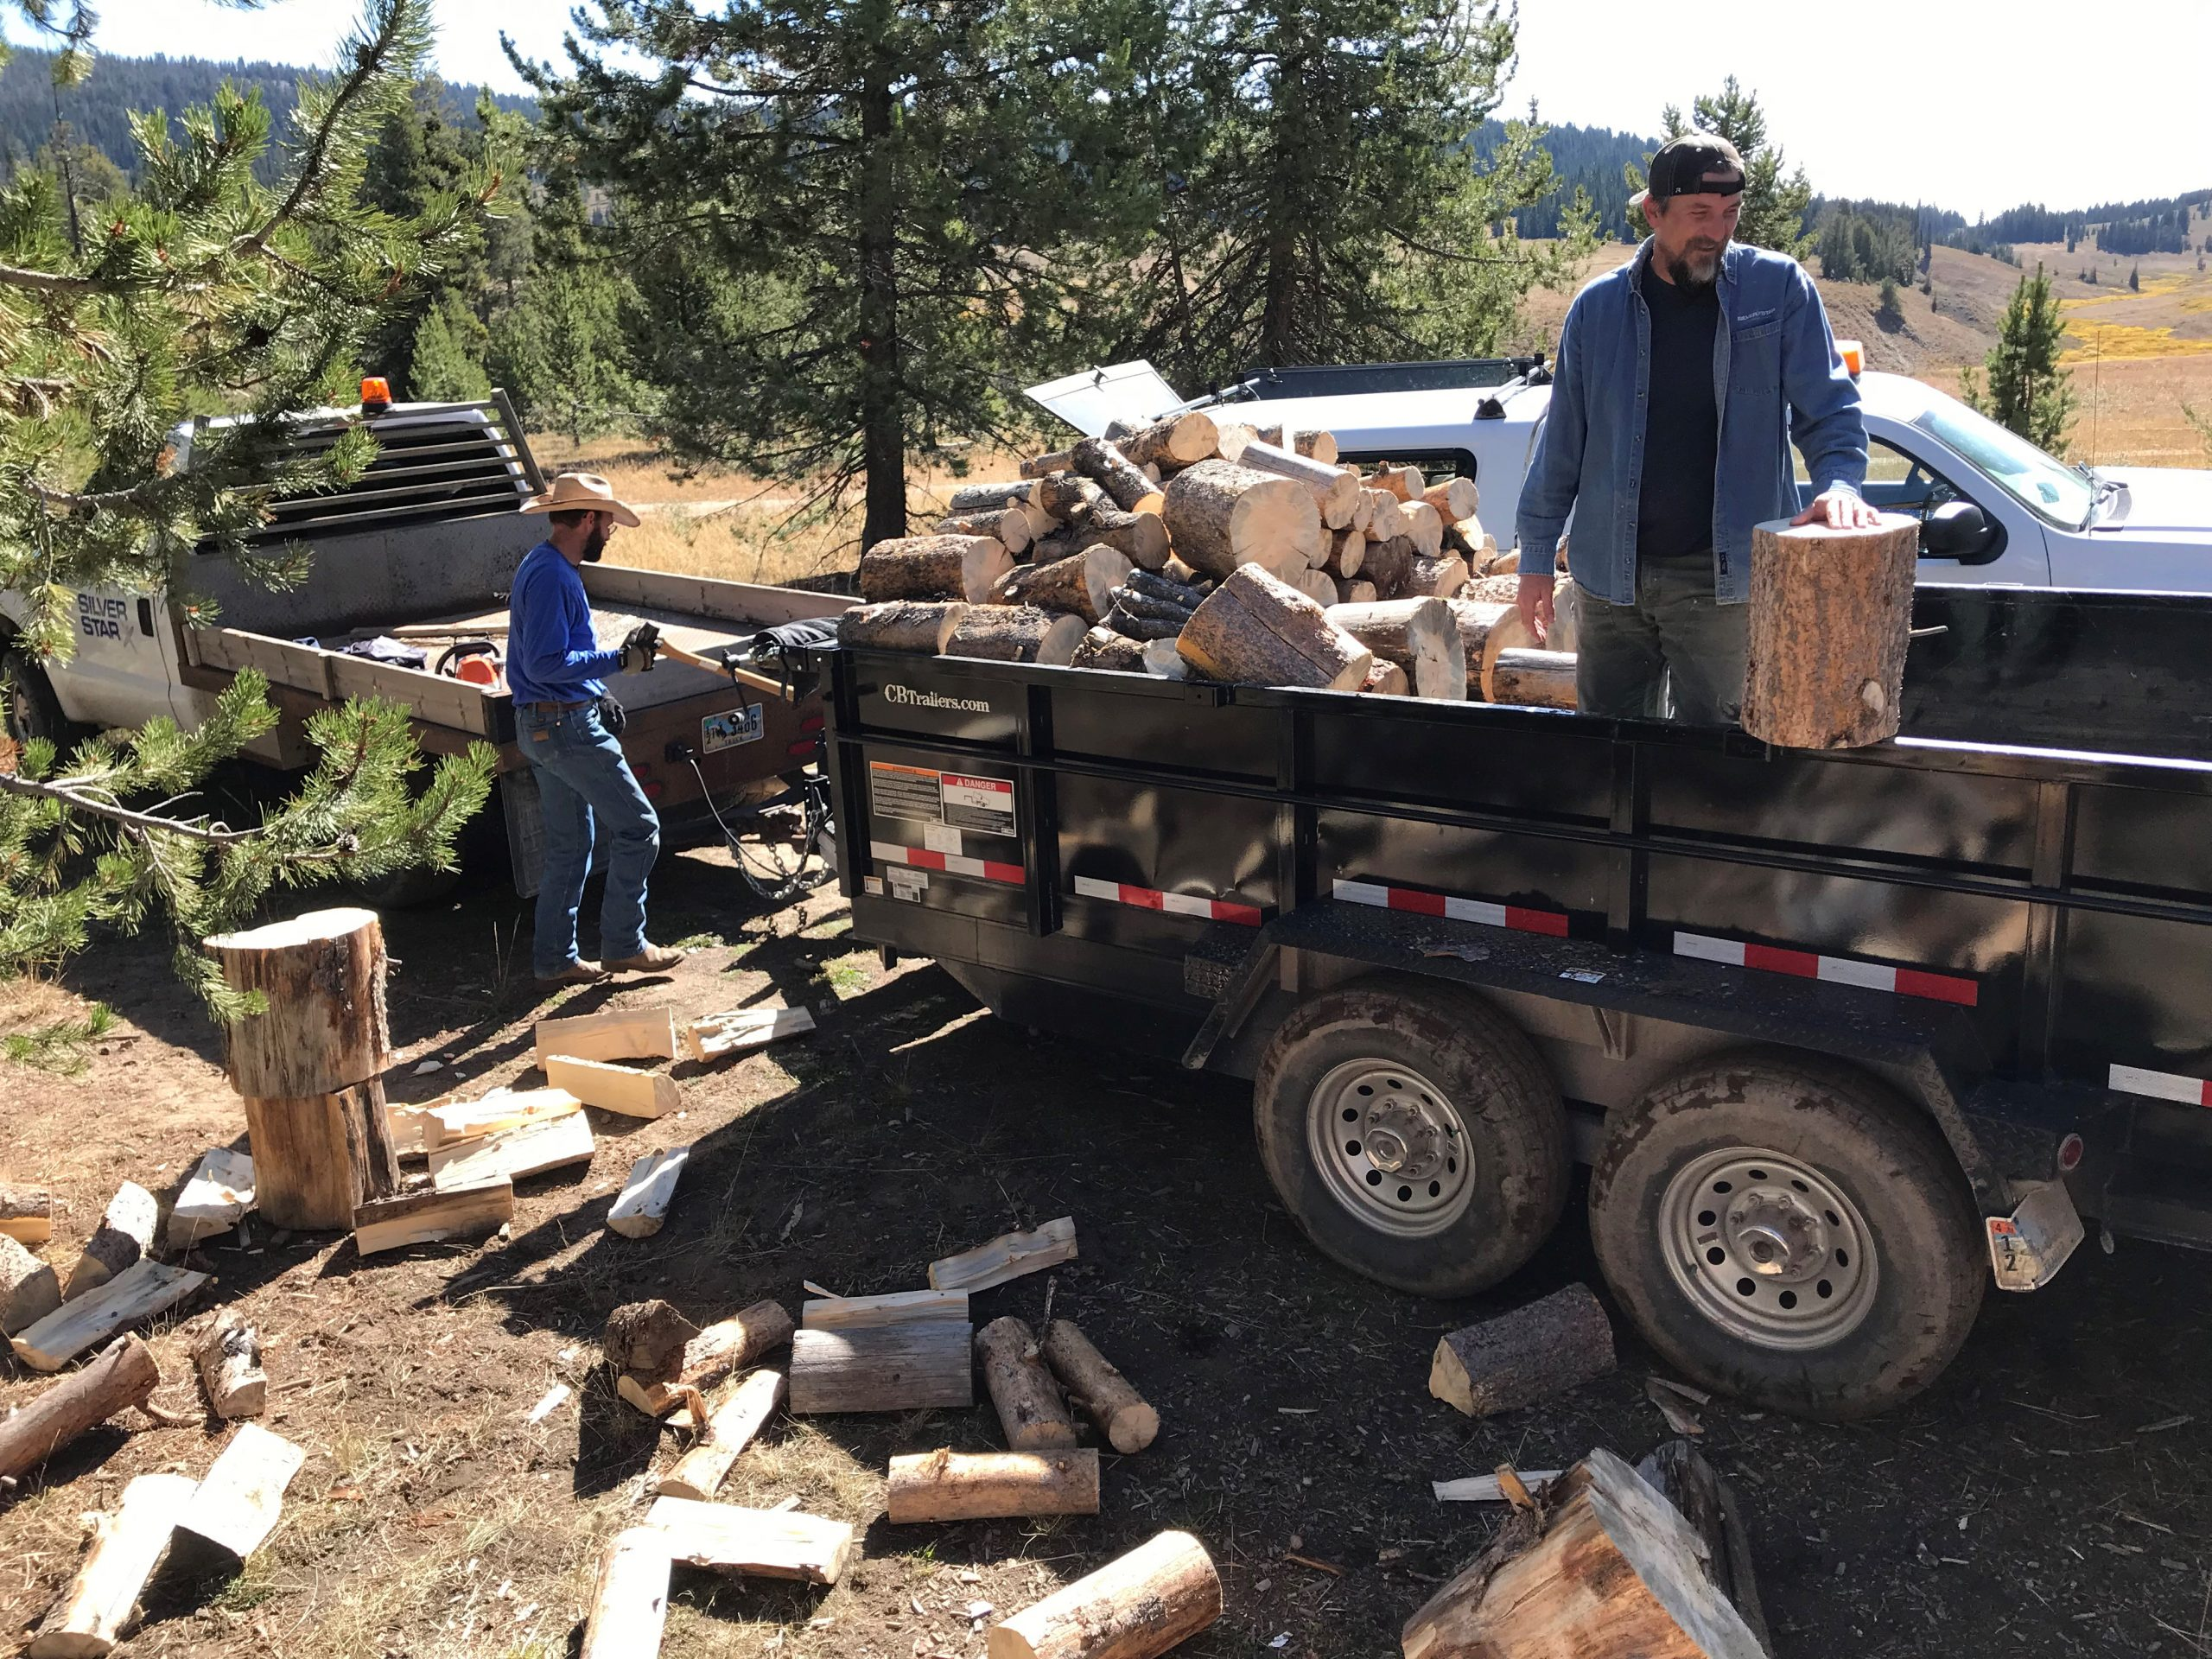 Silver Star Team Members load firewood